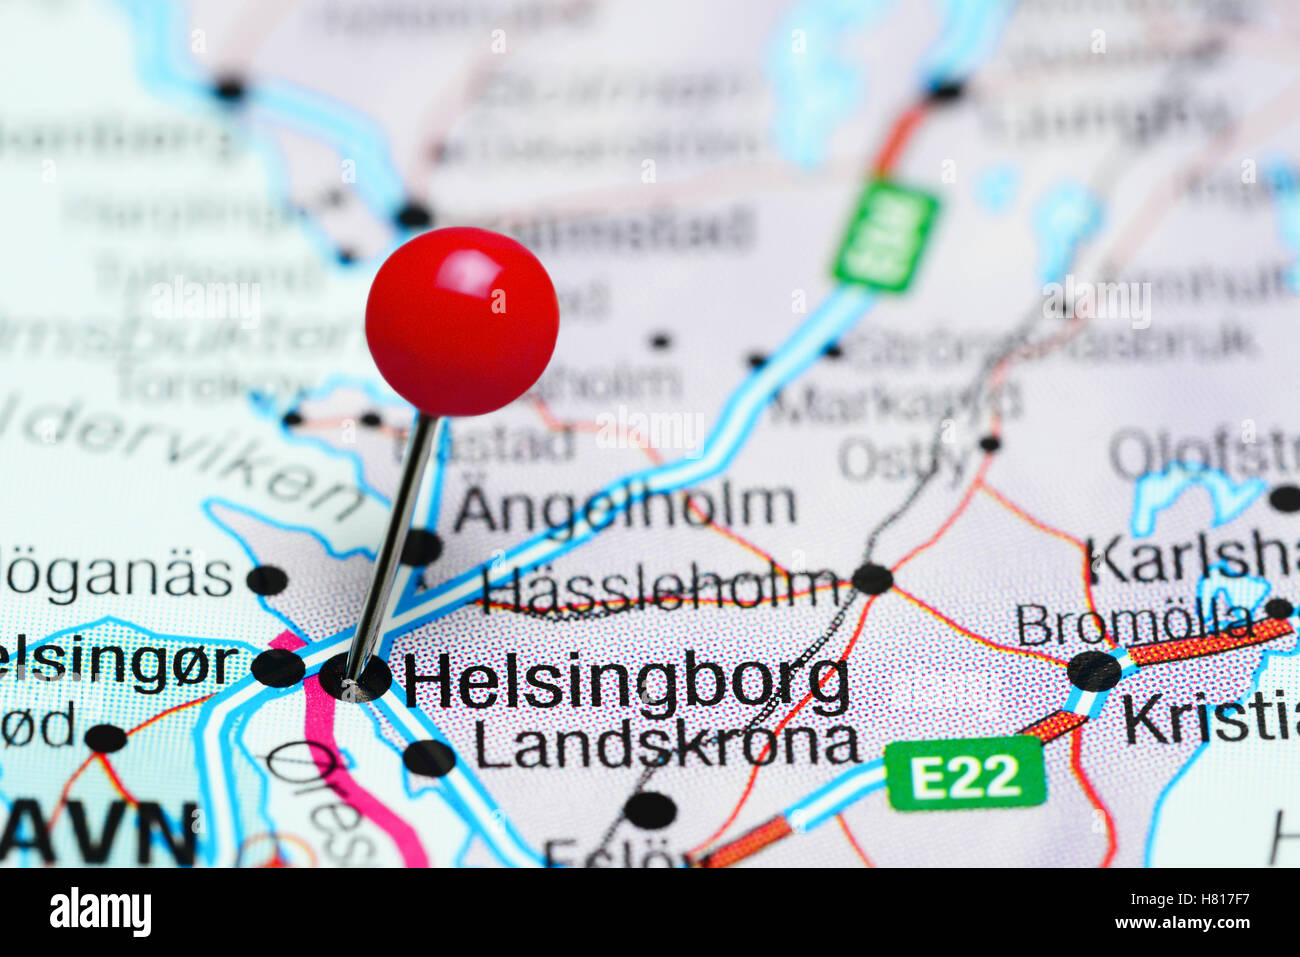 Helsingborg Pinned On A Map Of Sweden Stock Photo Royalty Free - Sweden map helsingborg